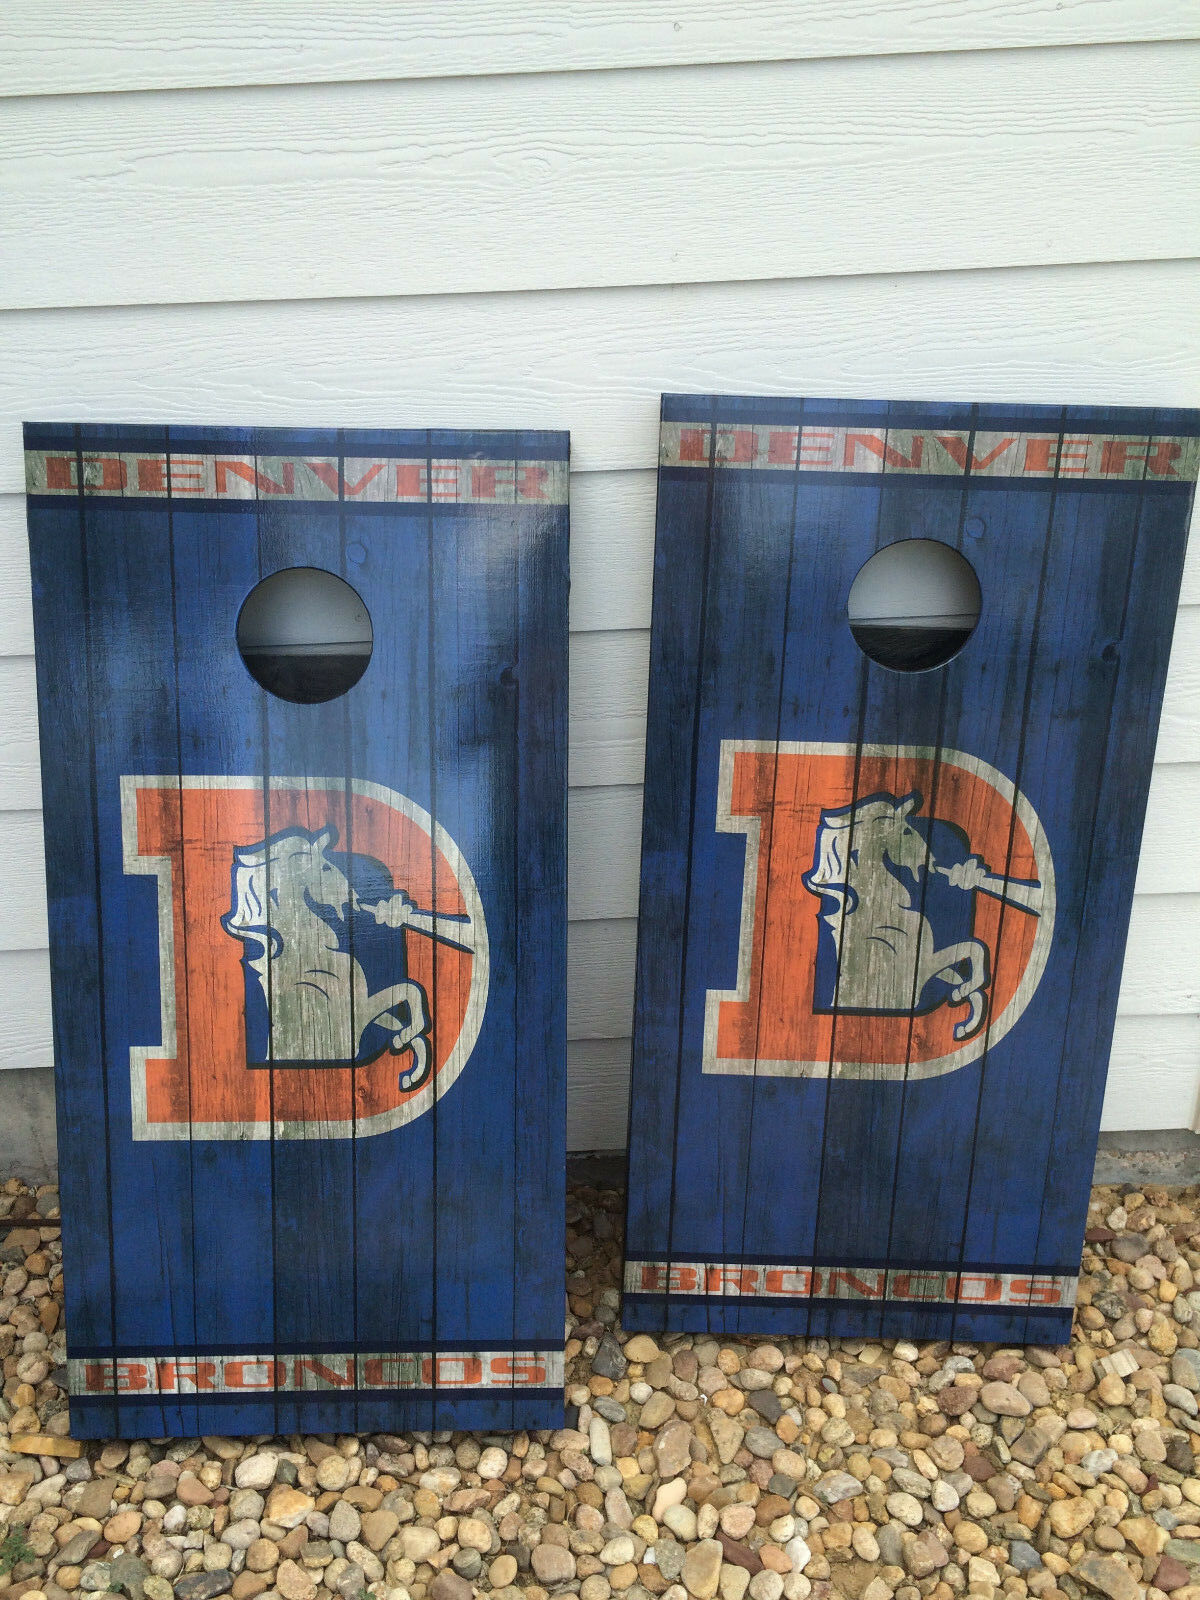 Denver Broncos Corn Hole Boards - Bean Bag Toss Game